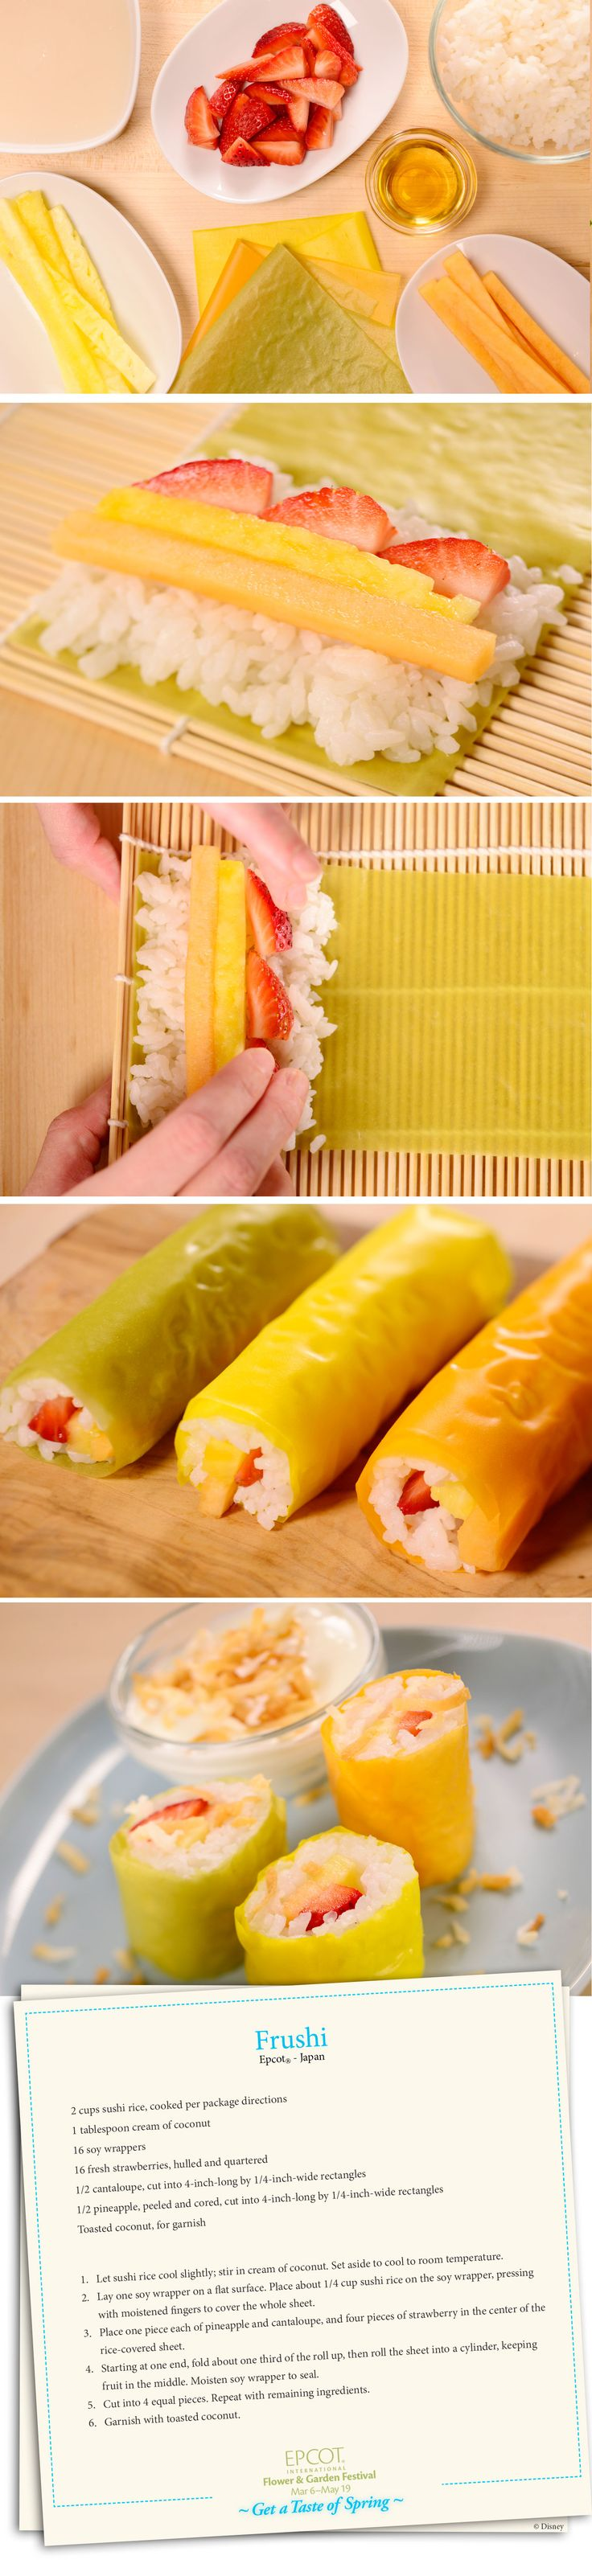 fruit sushi healthy fruit snacks recipe